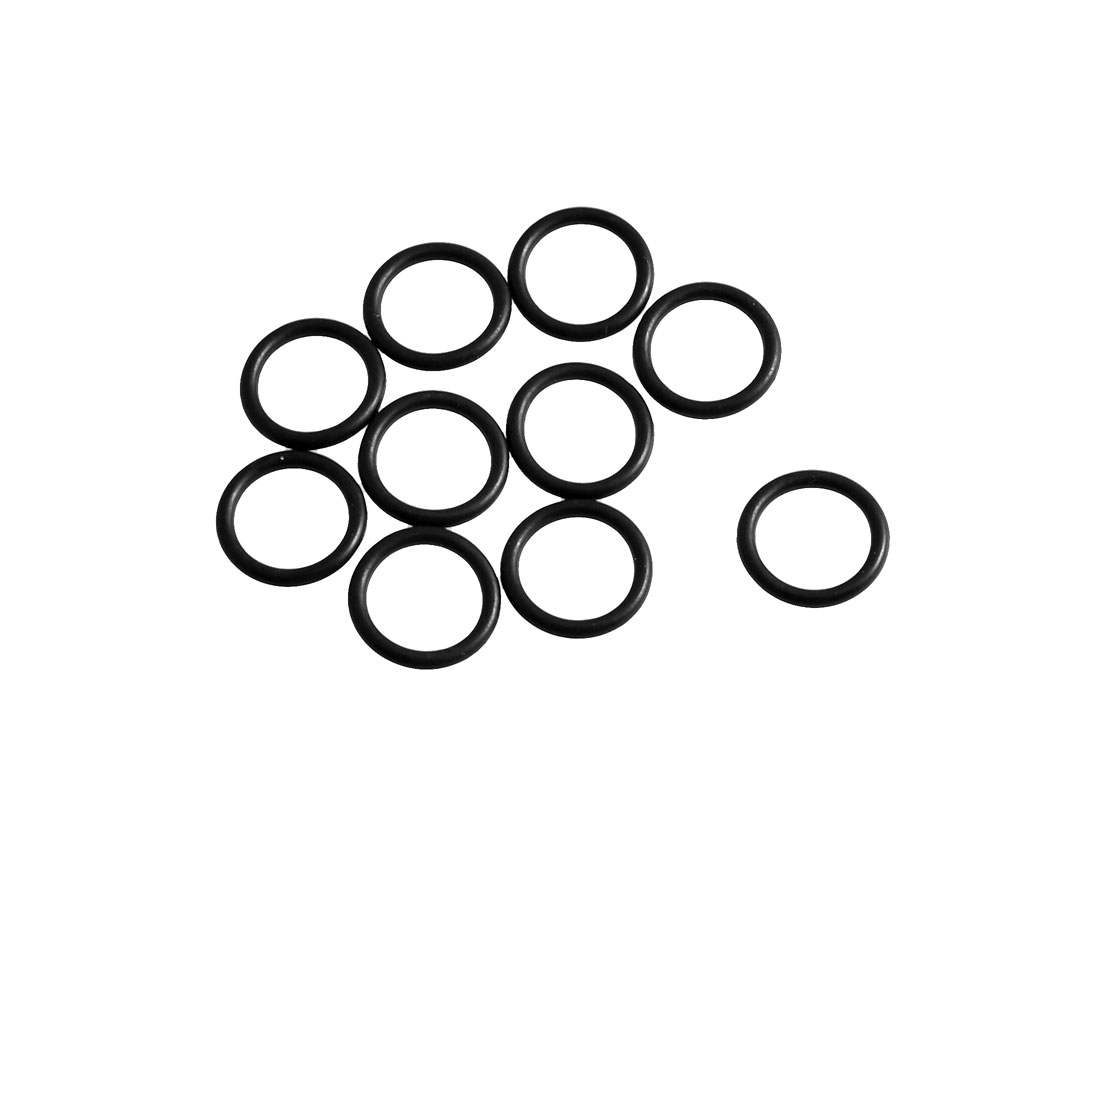 10 Pcs Black Rubber Oil Filter Sealing O Ring Gaskets 10.6mm x 1.8mm